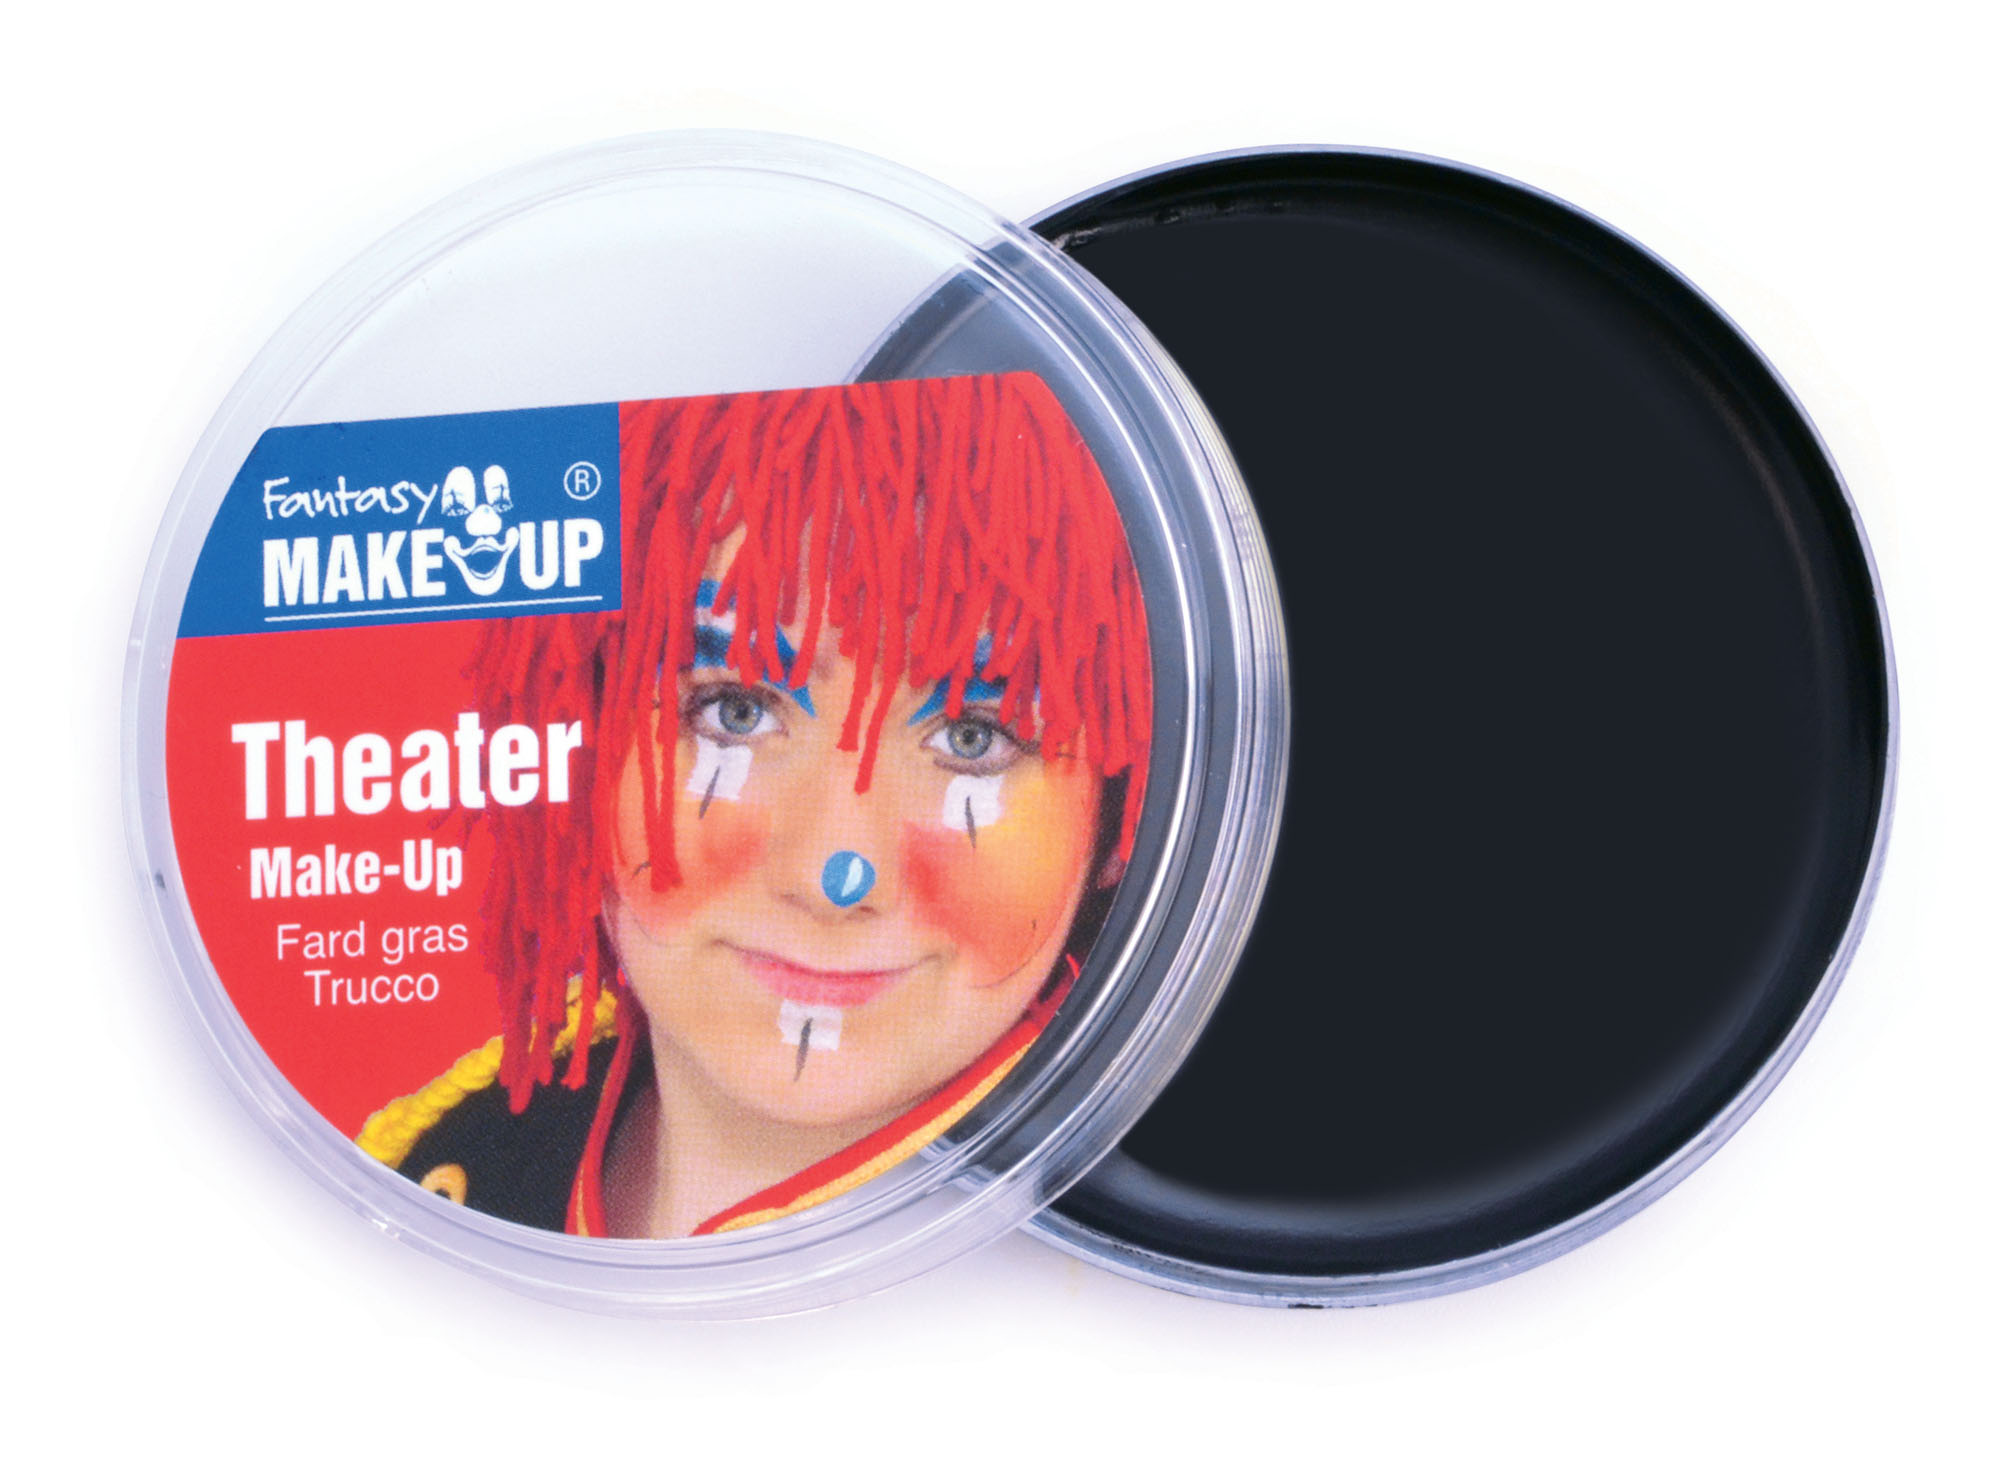 Black Face and Body Theater Make up in Compact